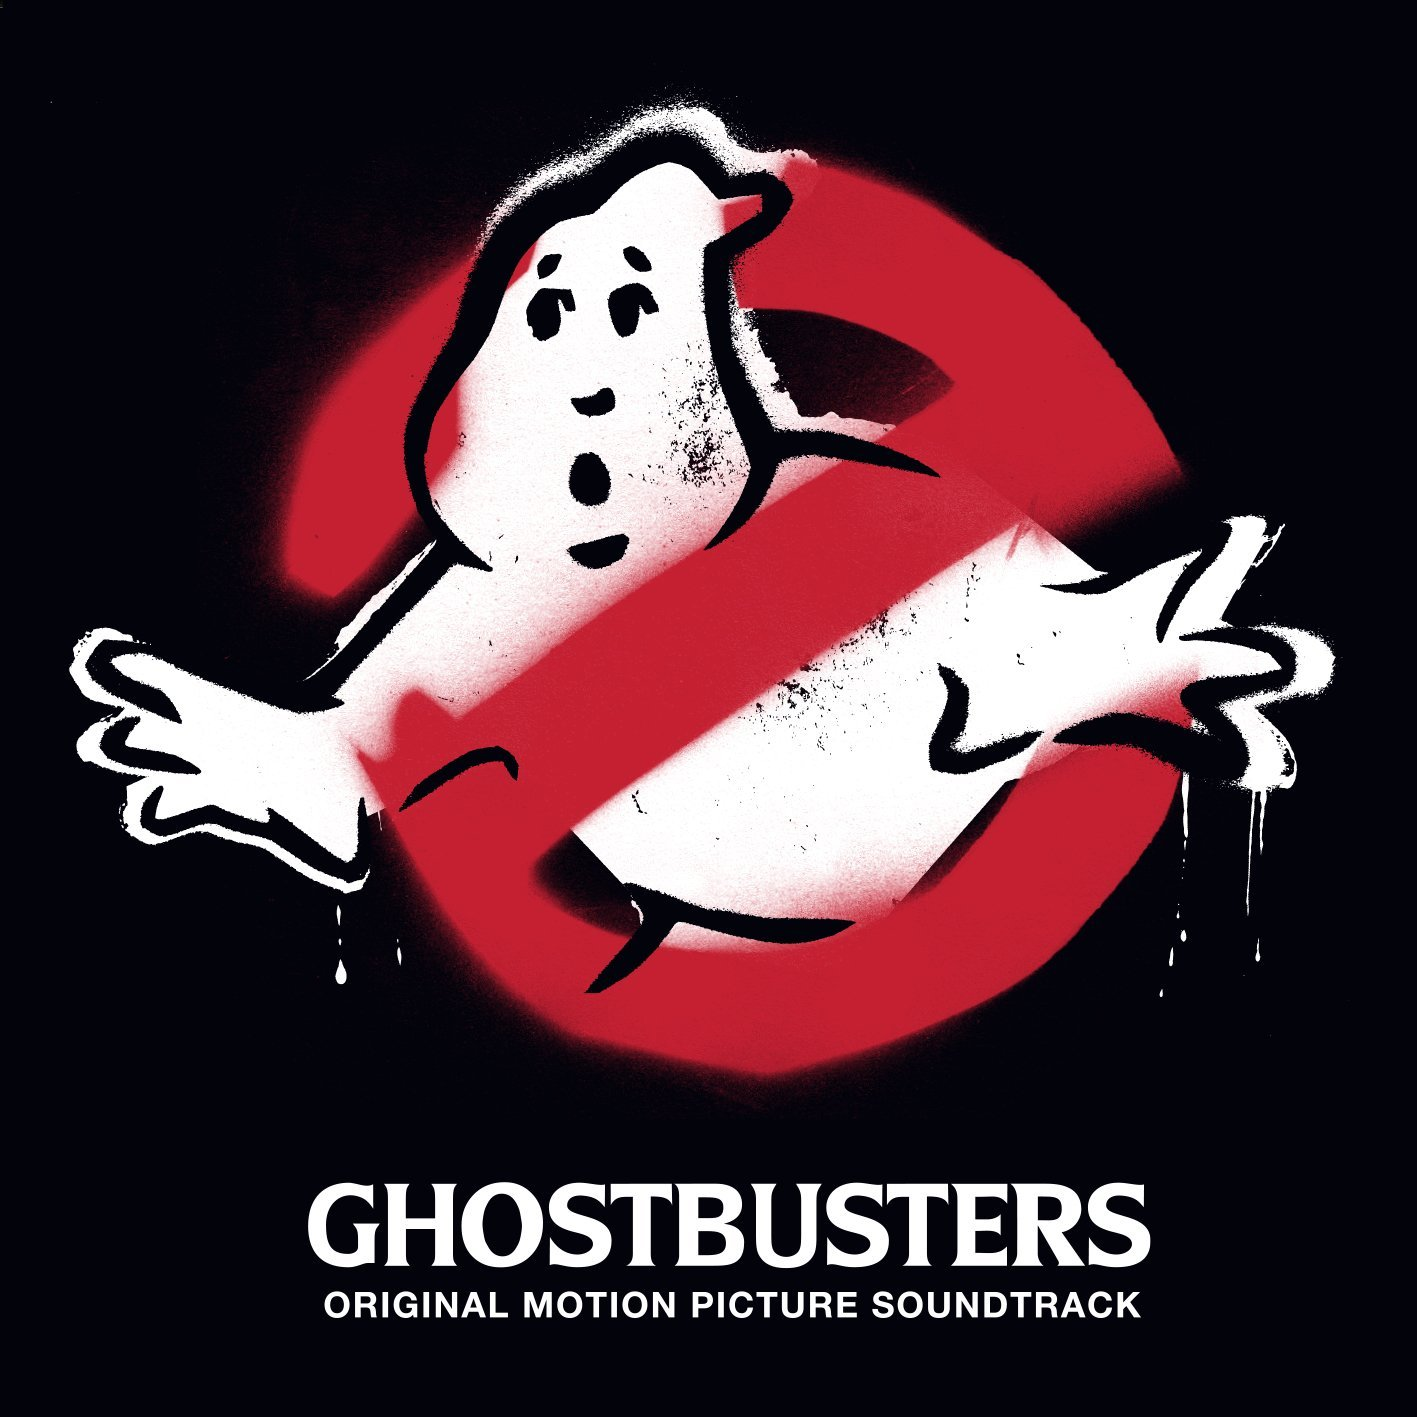 ost 08 16 Ghostbusters